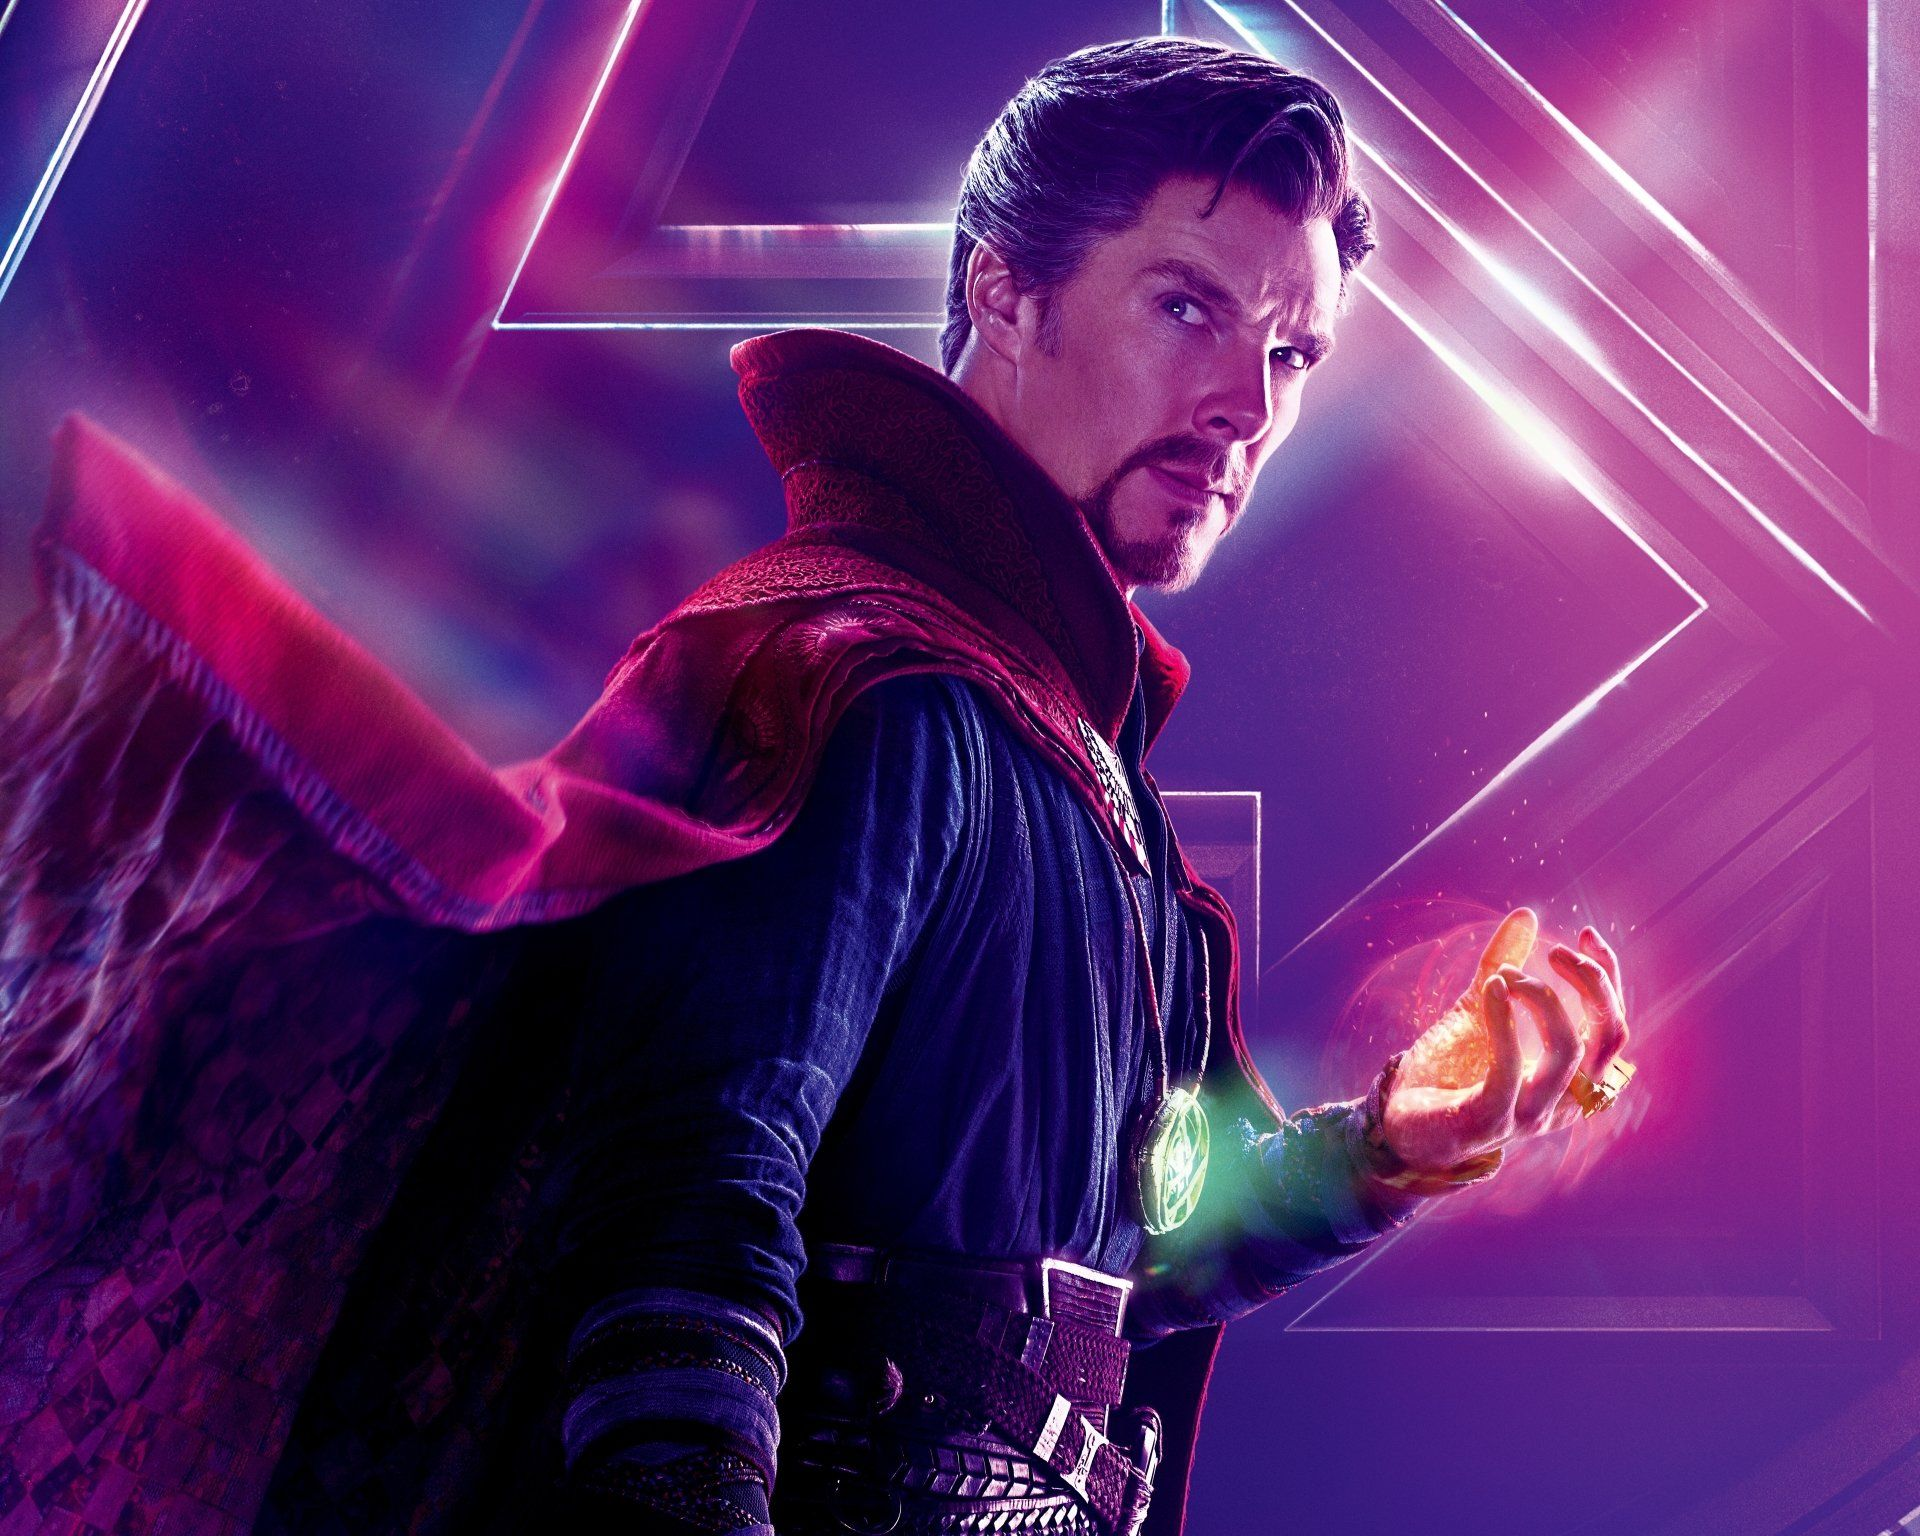 Dr Strange Avengers Infinity War 8k Ultra Hd Wallpaper And Background Image 7866x6292 Id 916247 Infinity War Avengers Doctor Strange